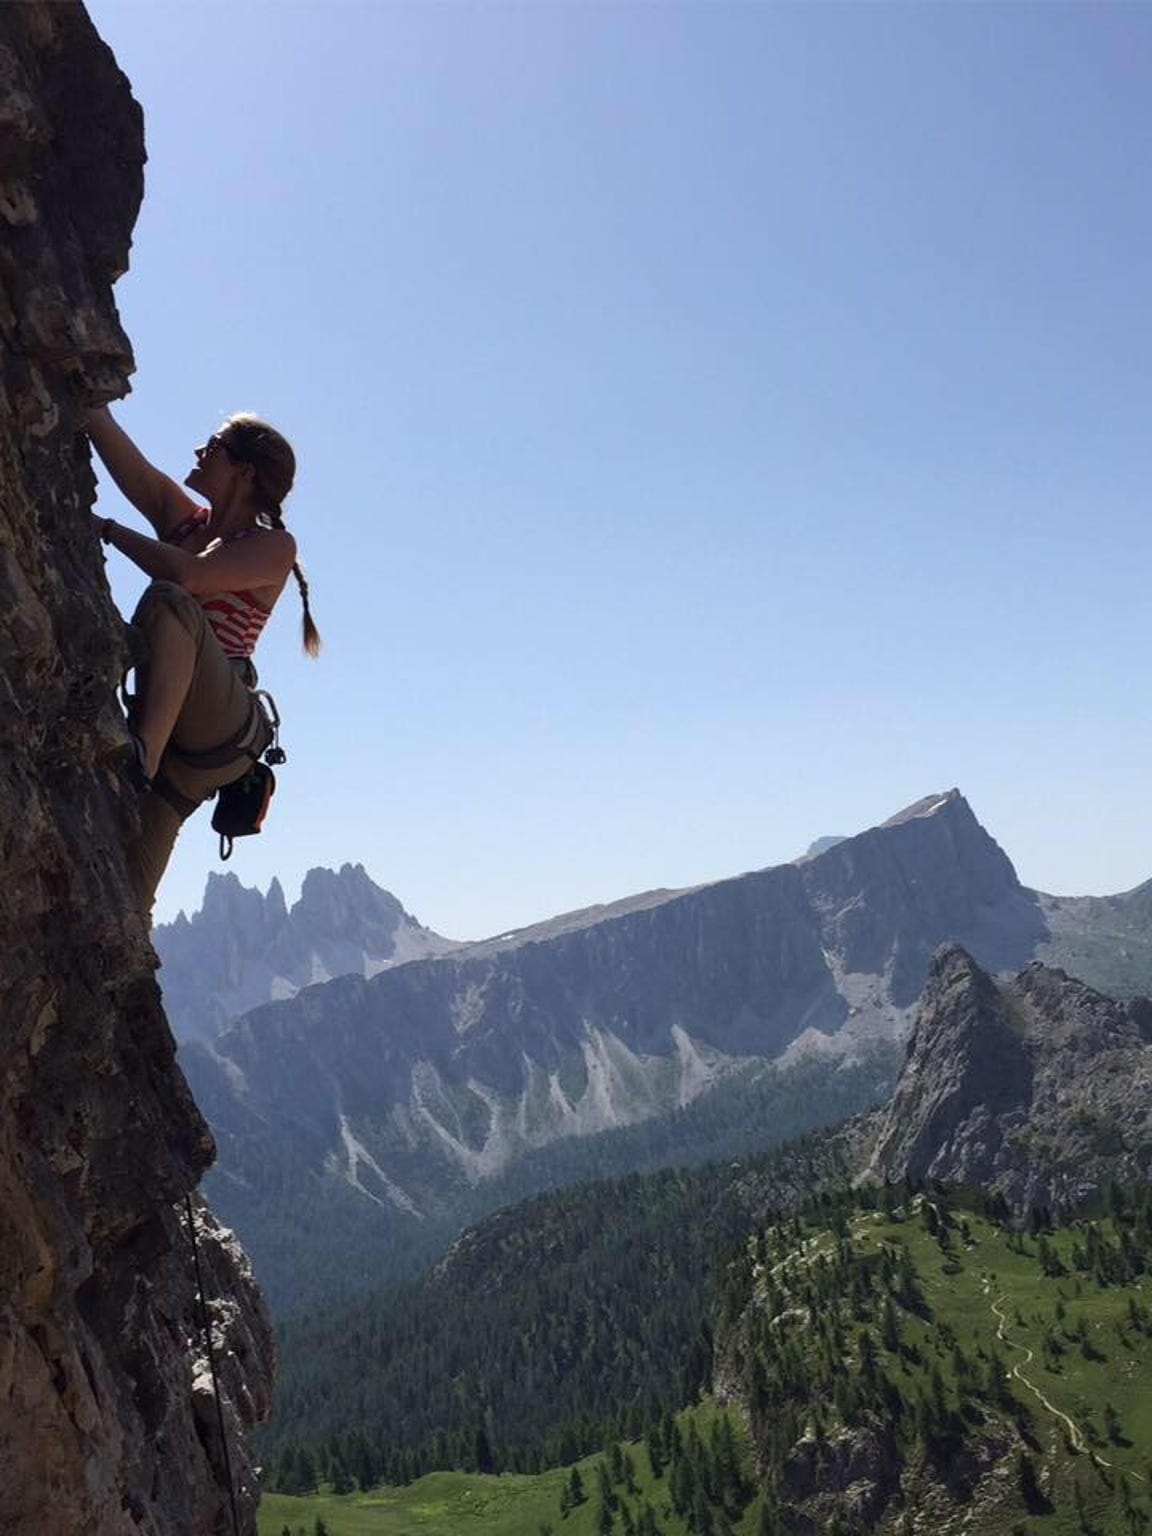 April Kirby sends a route in the Dolomites of Northern Italy.